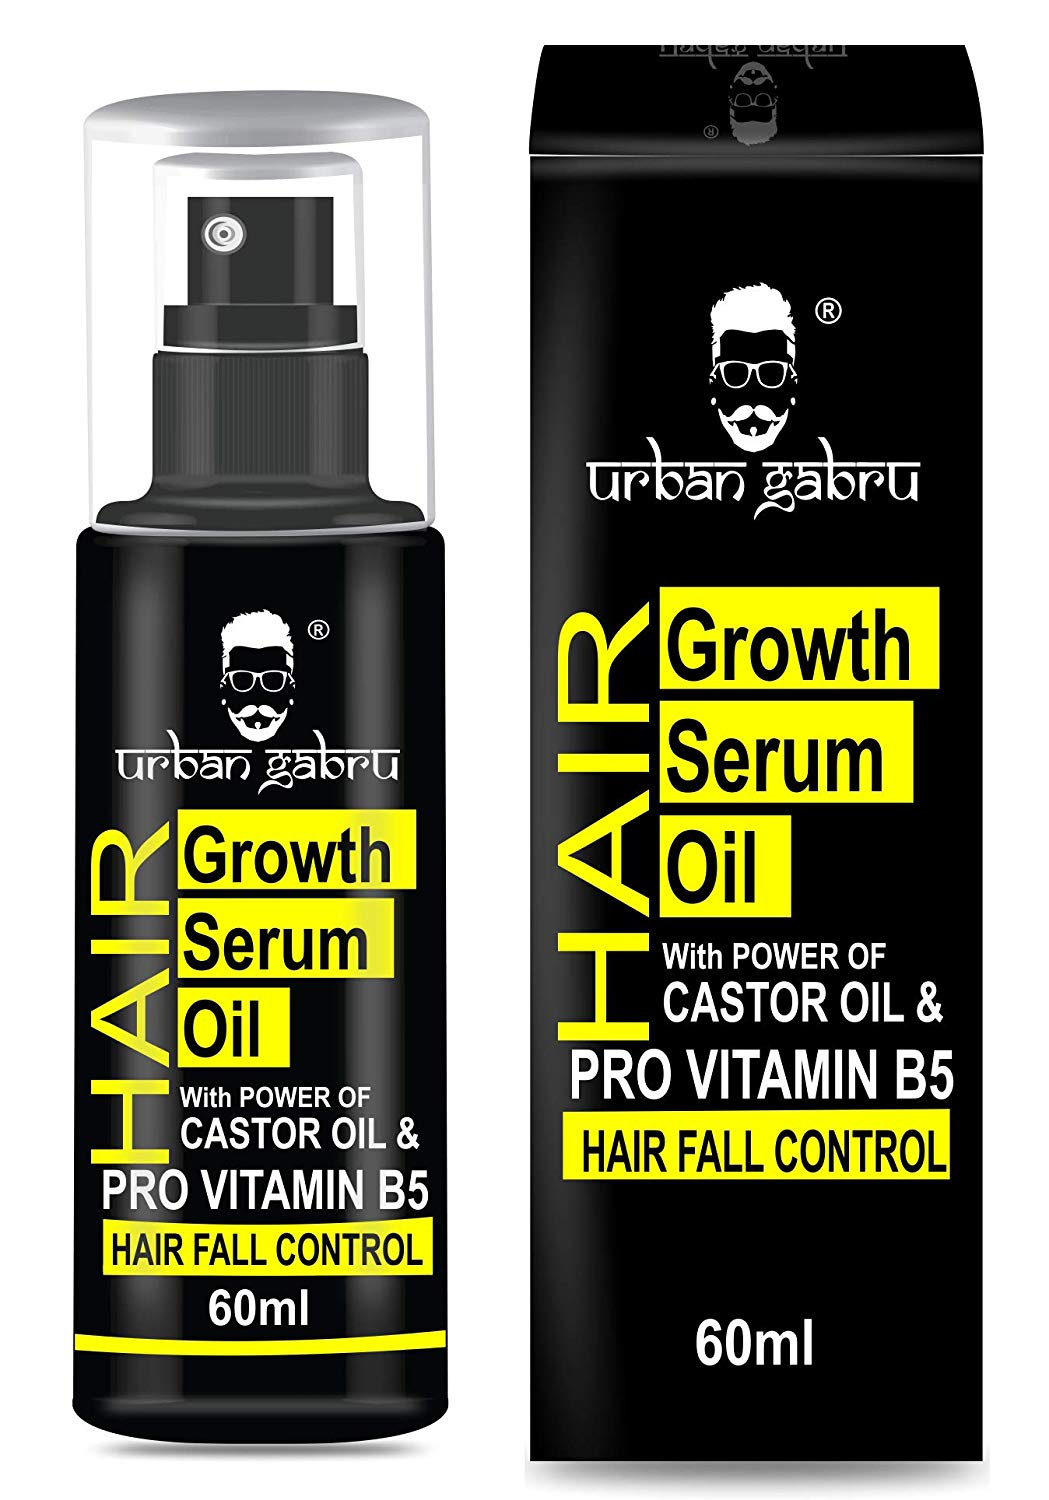 UrbanGabru  Hair Growth Serum oil with Castor oil - Hair fall control oil for Men & Women